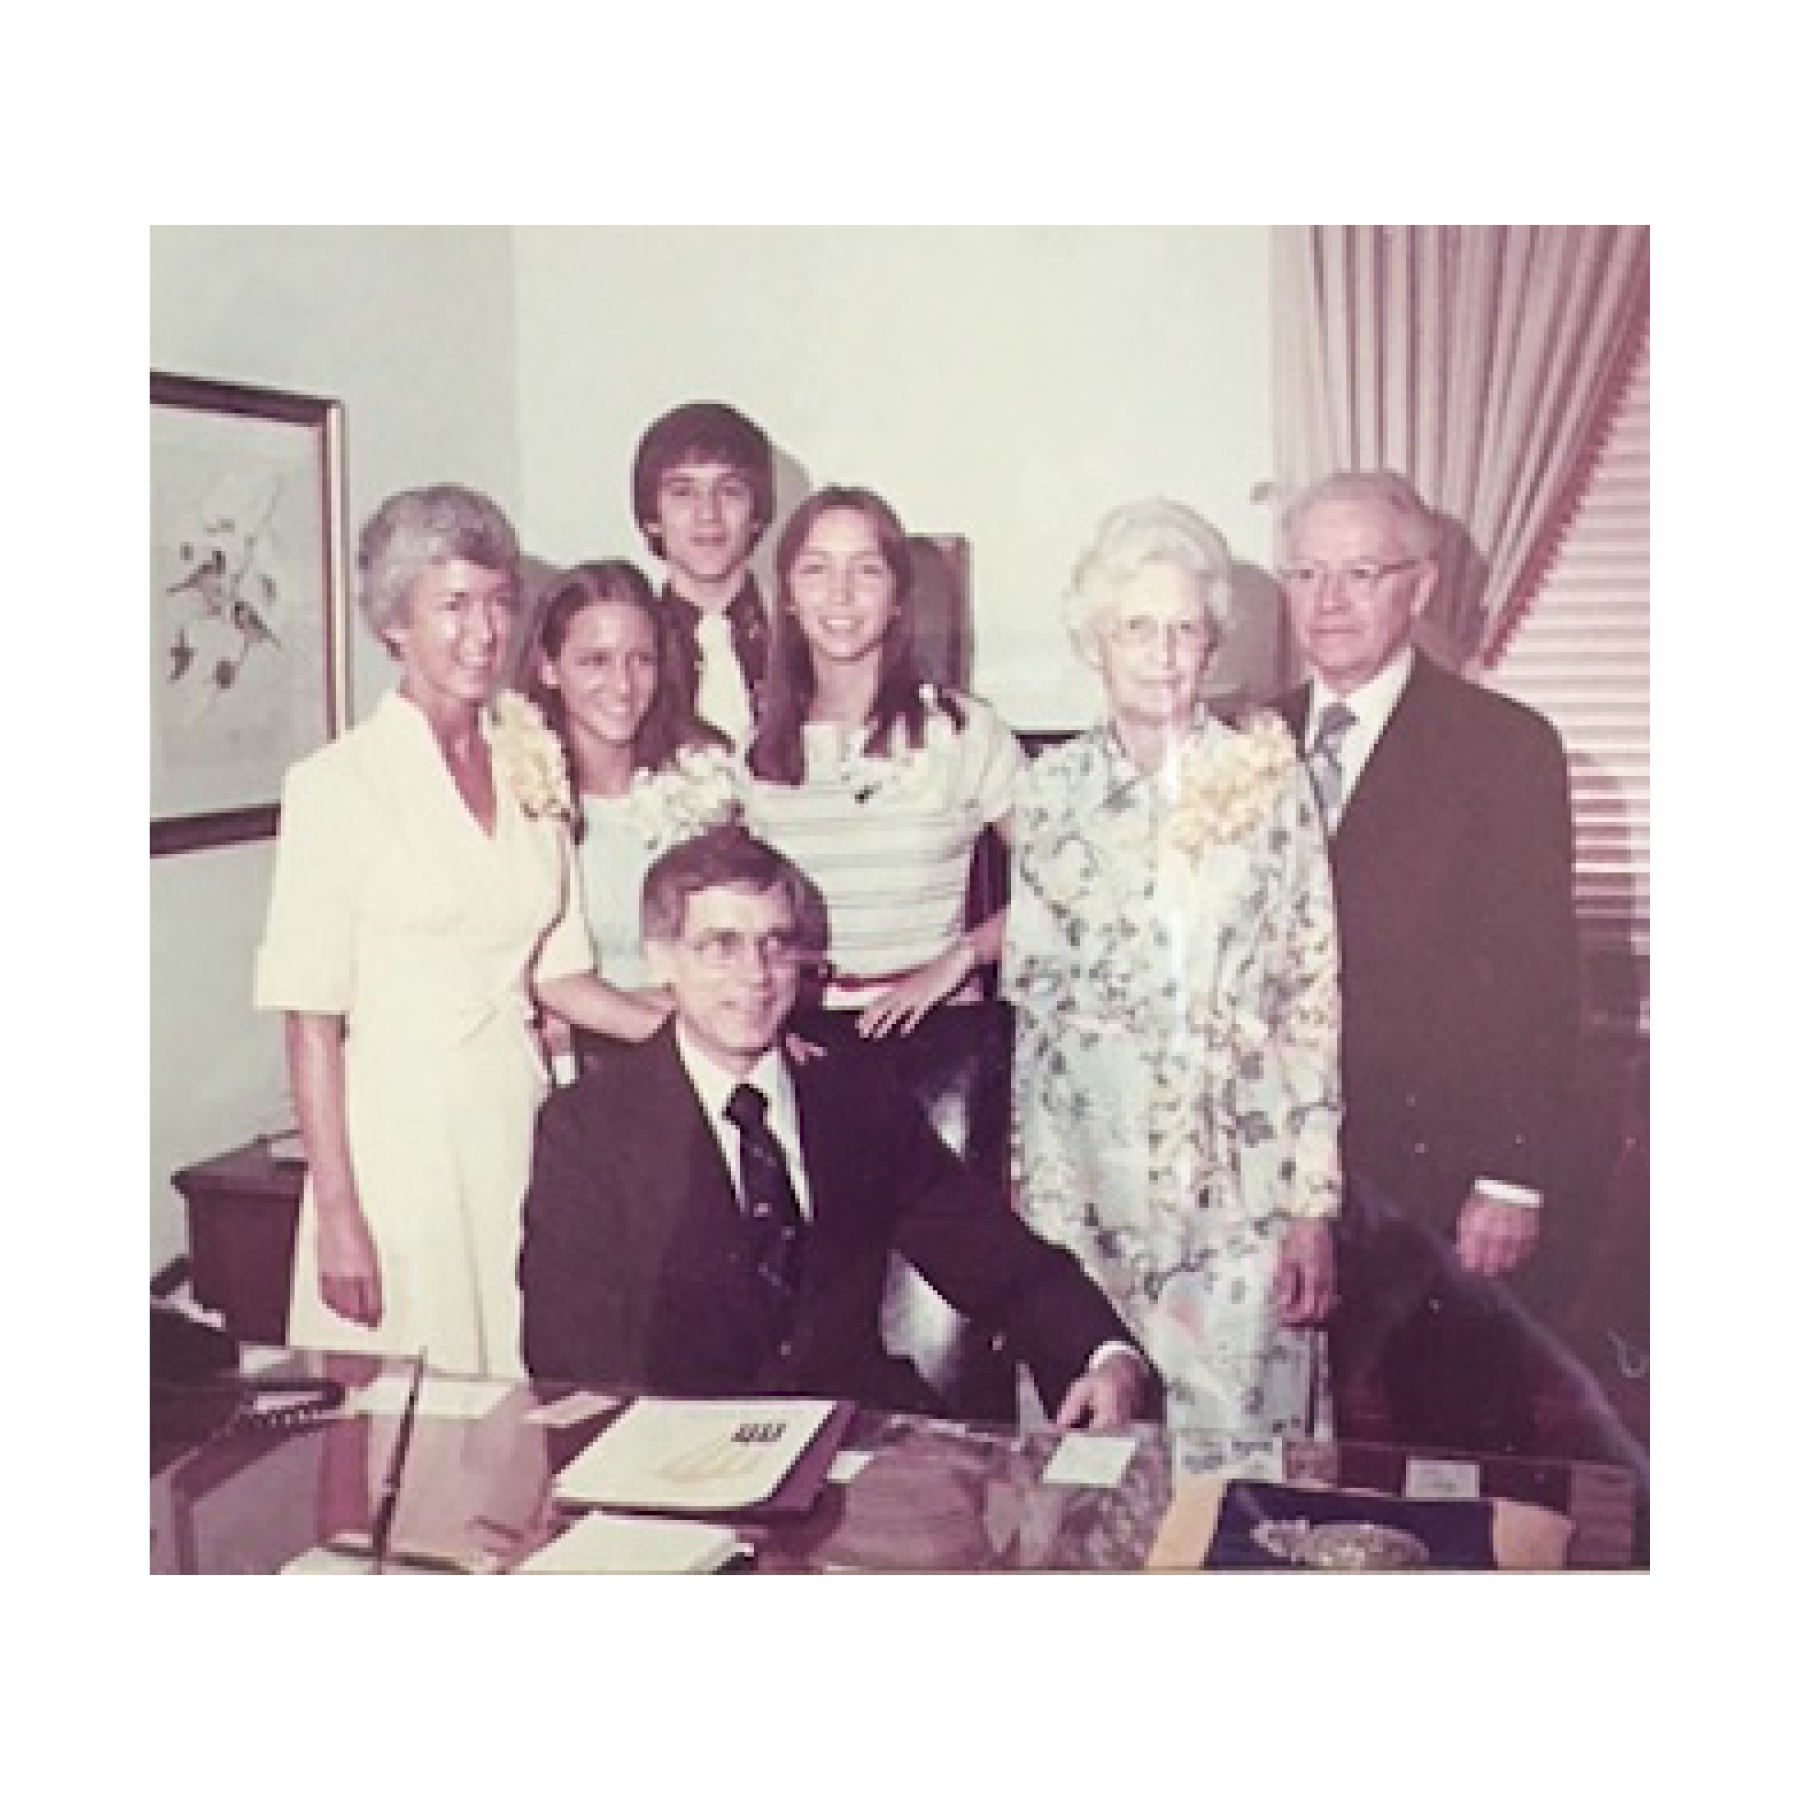 1975 —Dr. Norm Fintel became president of Roanoke College, three years after completing his Ph.D. in Higher Education. The Fintel family is shown here, with Norm seated at his desk, and his parents to the right.  (photo courtesy of Roanoke College)